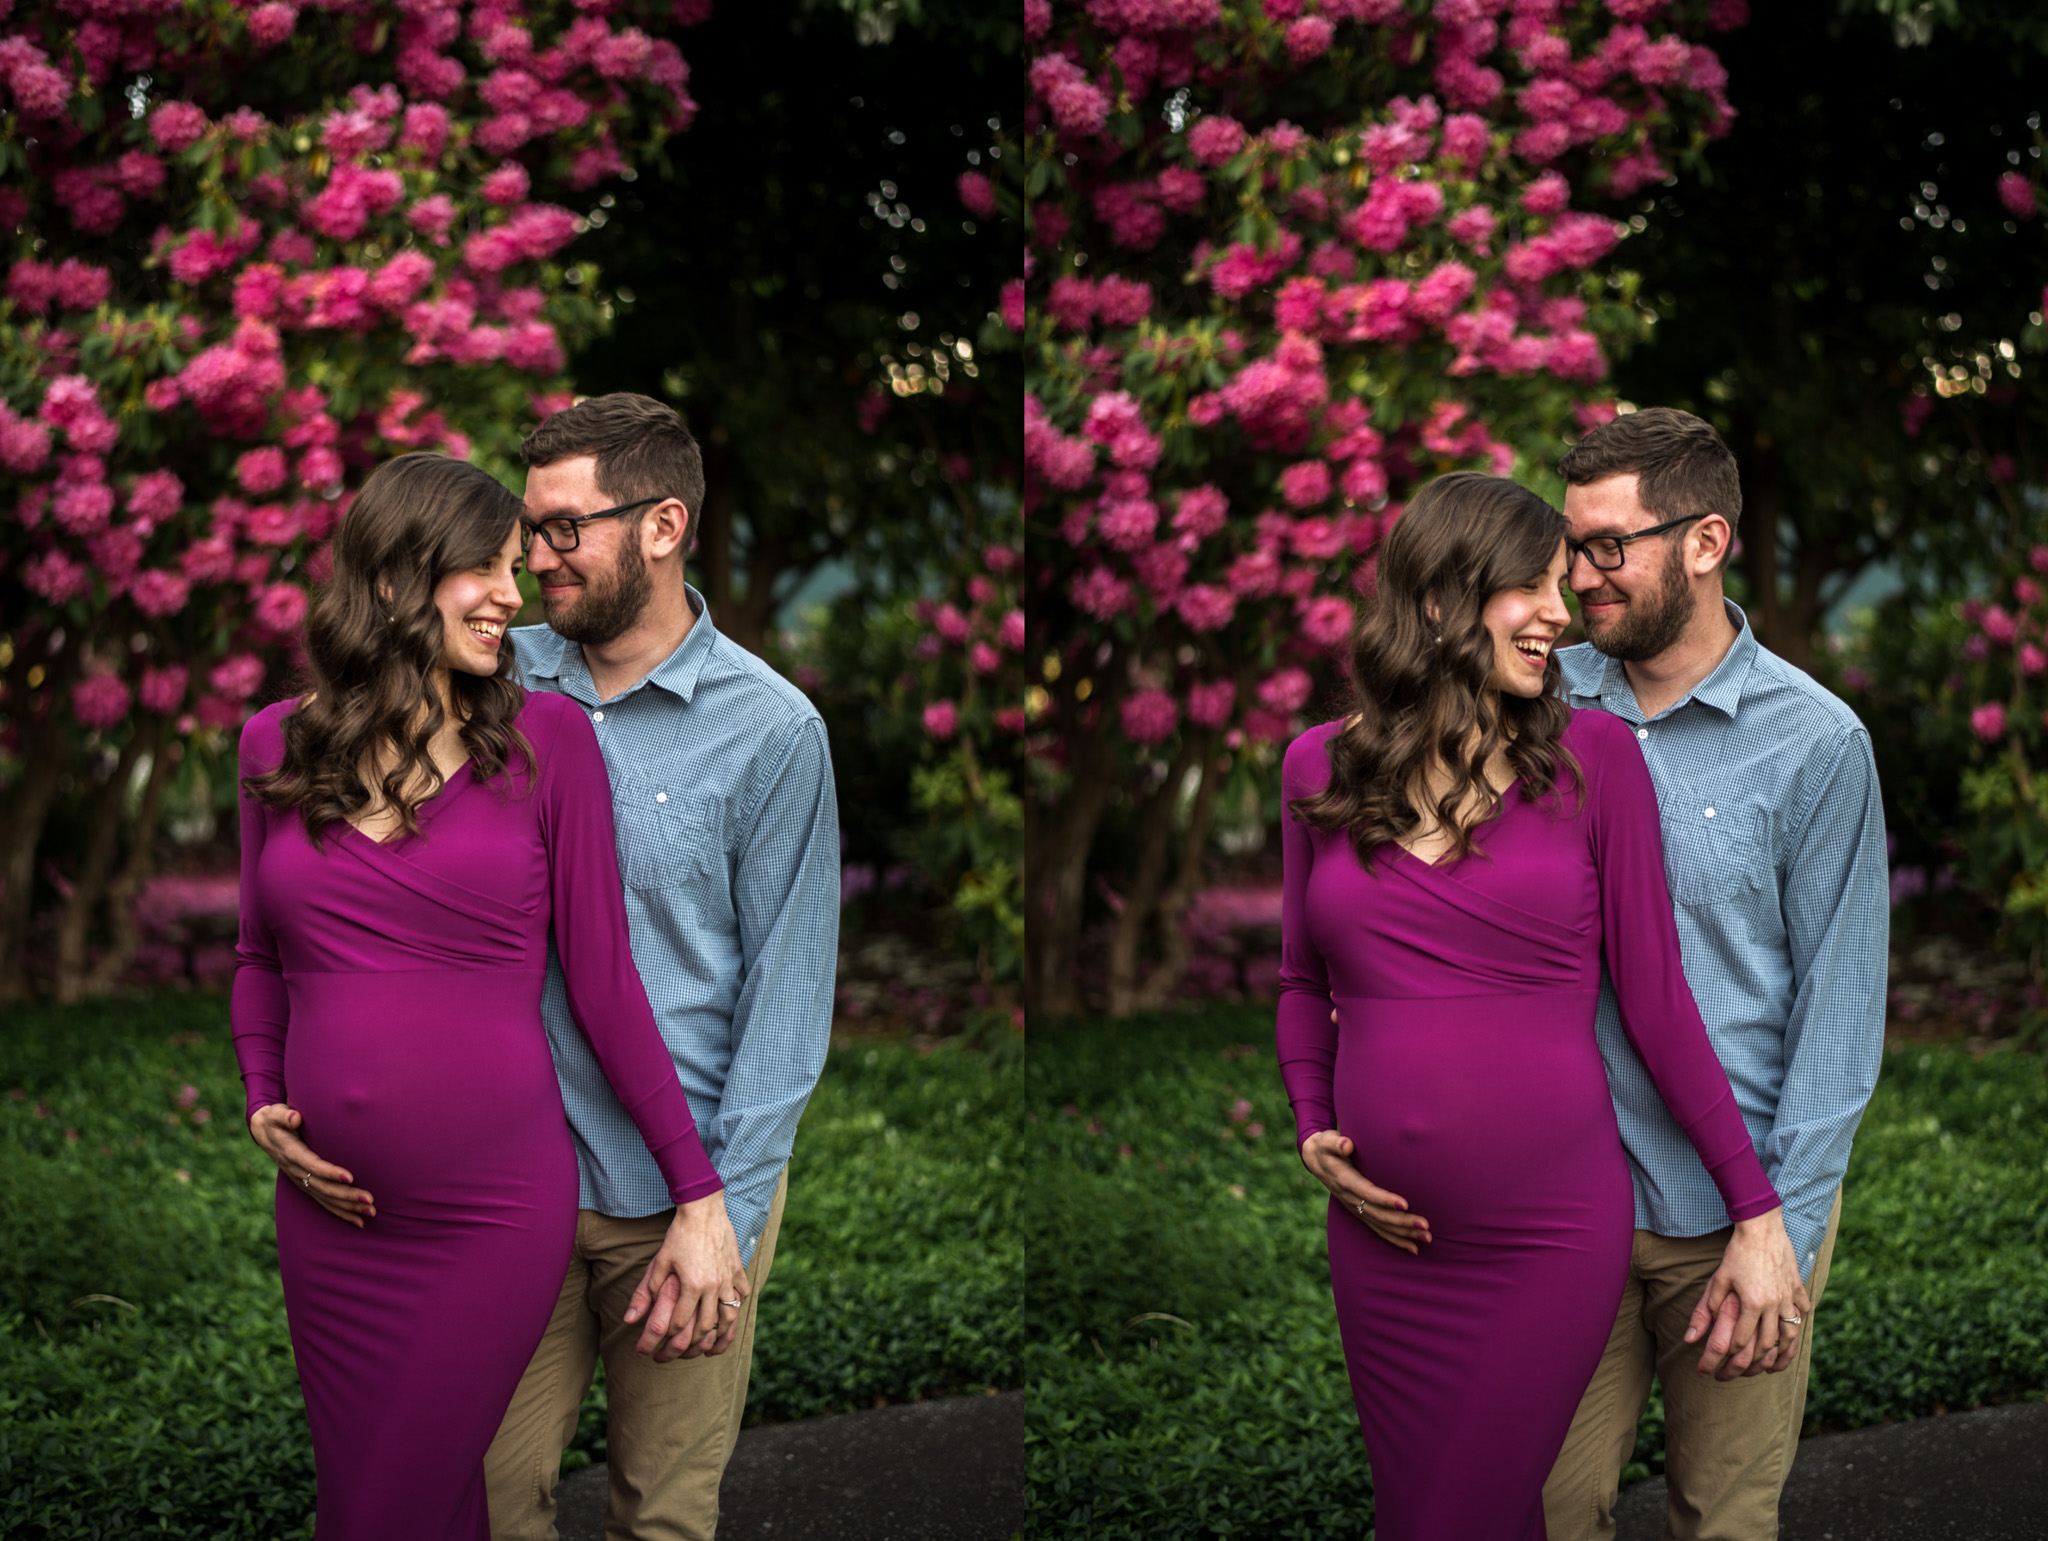 Maternity session at Deer Lake Park, in Burnaby BC